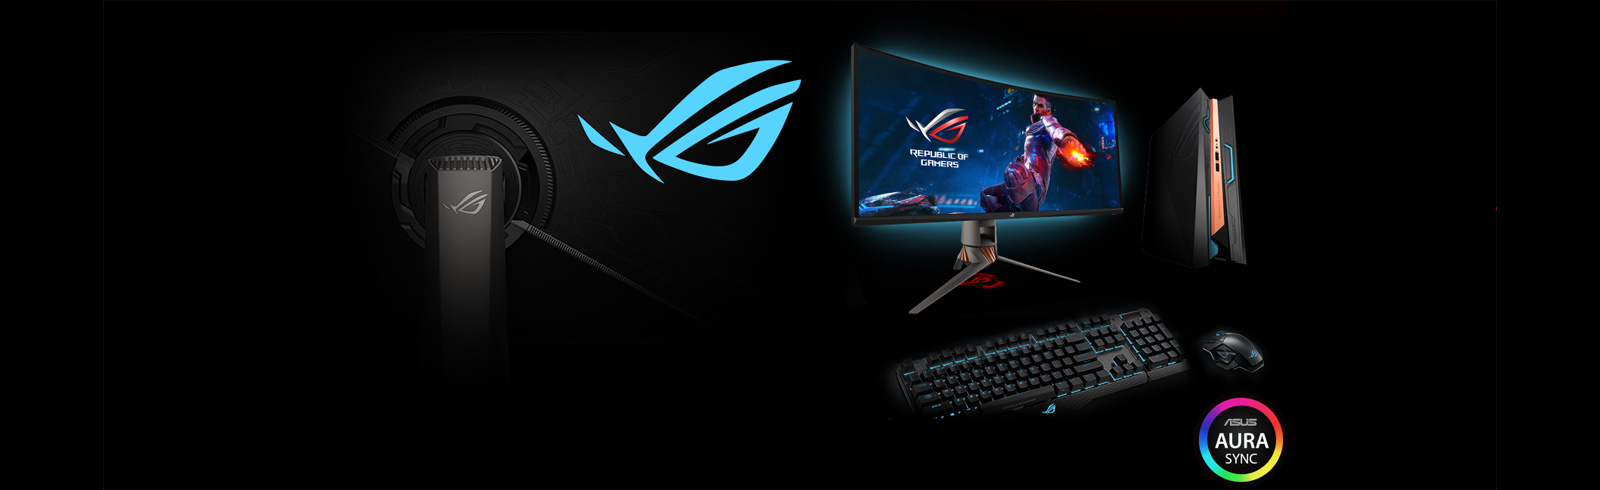 Asus unveils a new flagship ROG gaming monitor